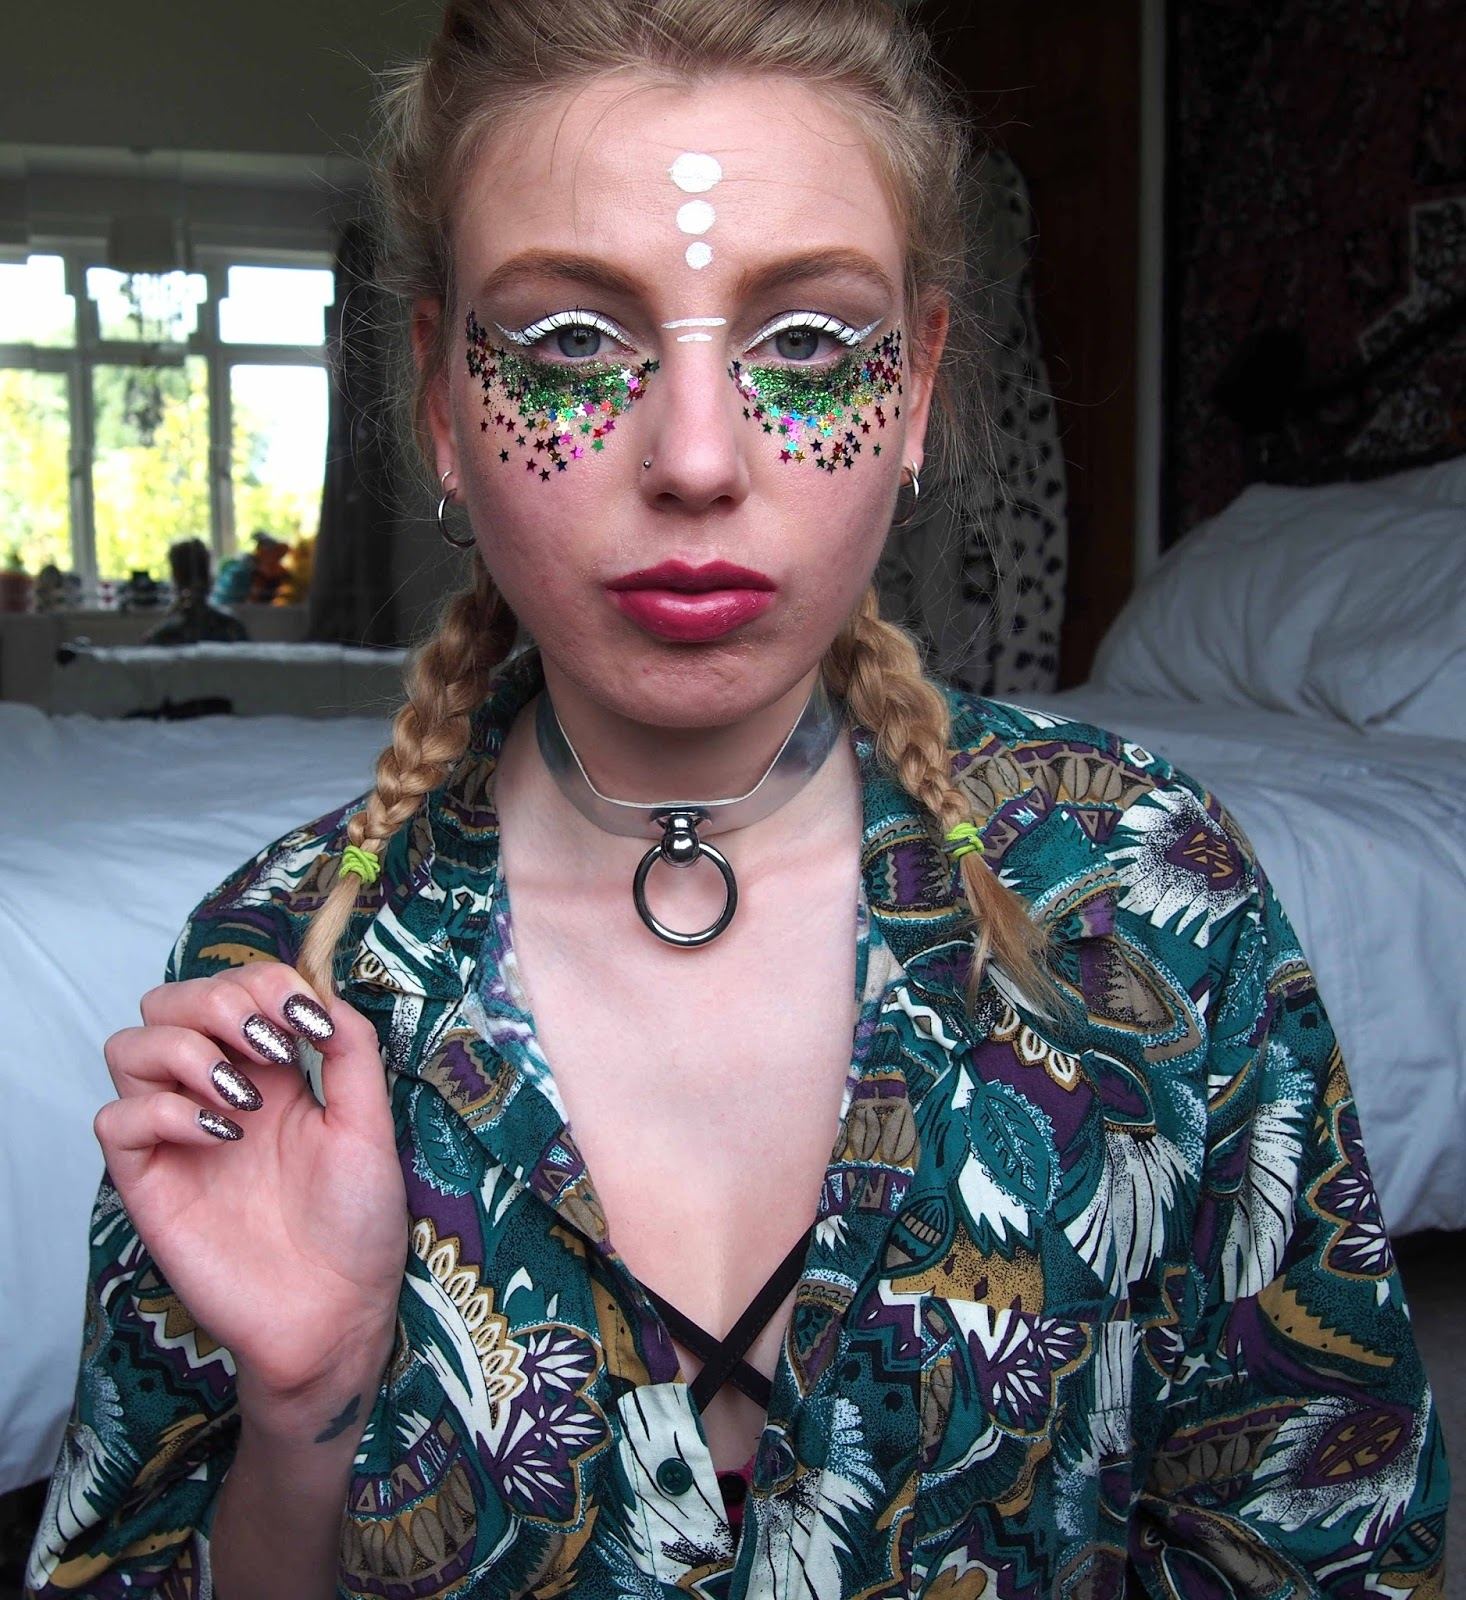 festival bestival the future makeup, festival glitter star sequin makeup, white eyeliner, space sci fi alien makeup 4